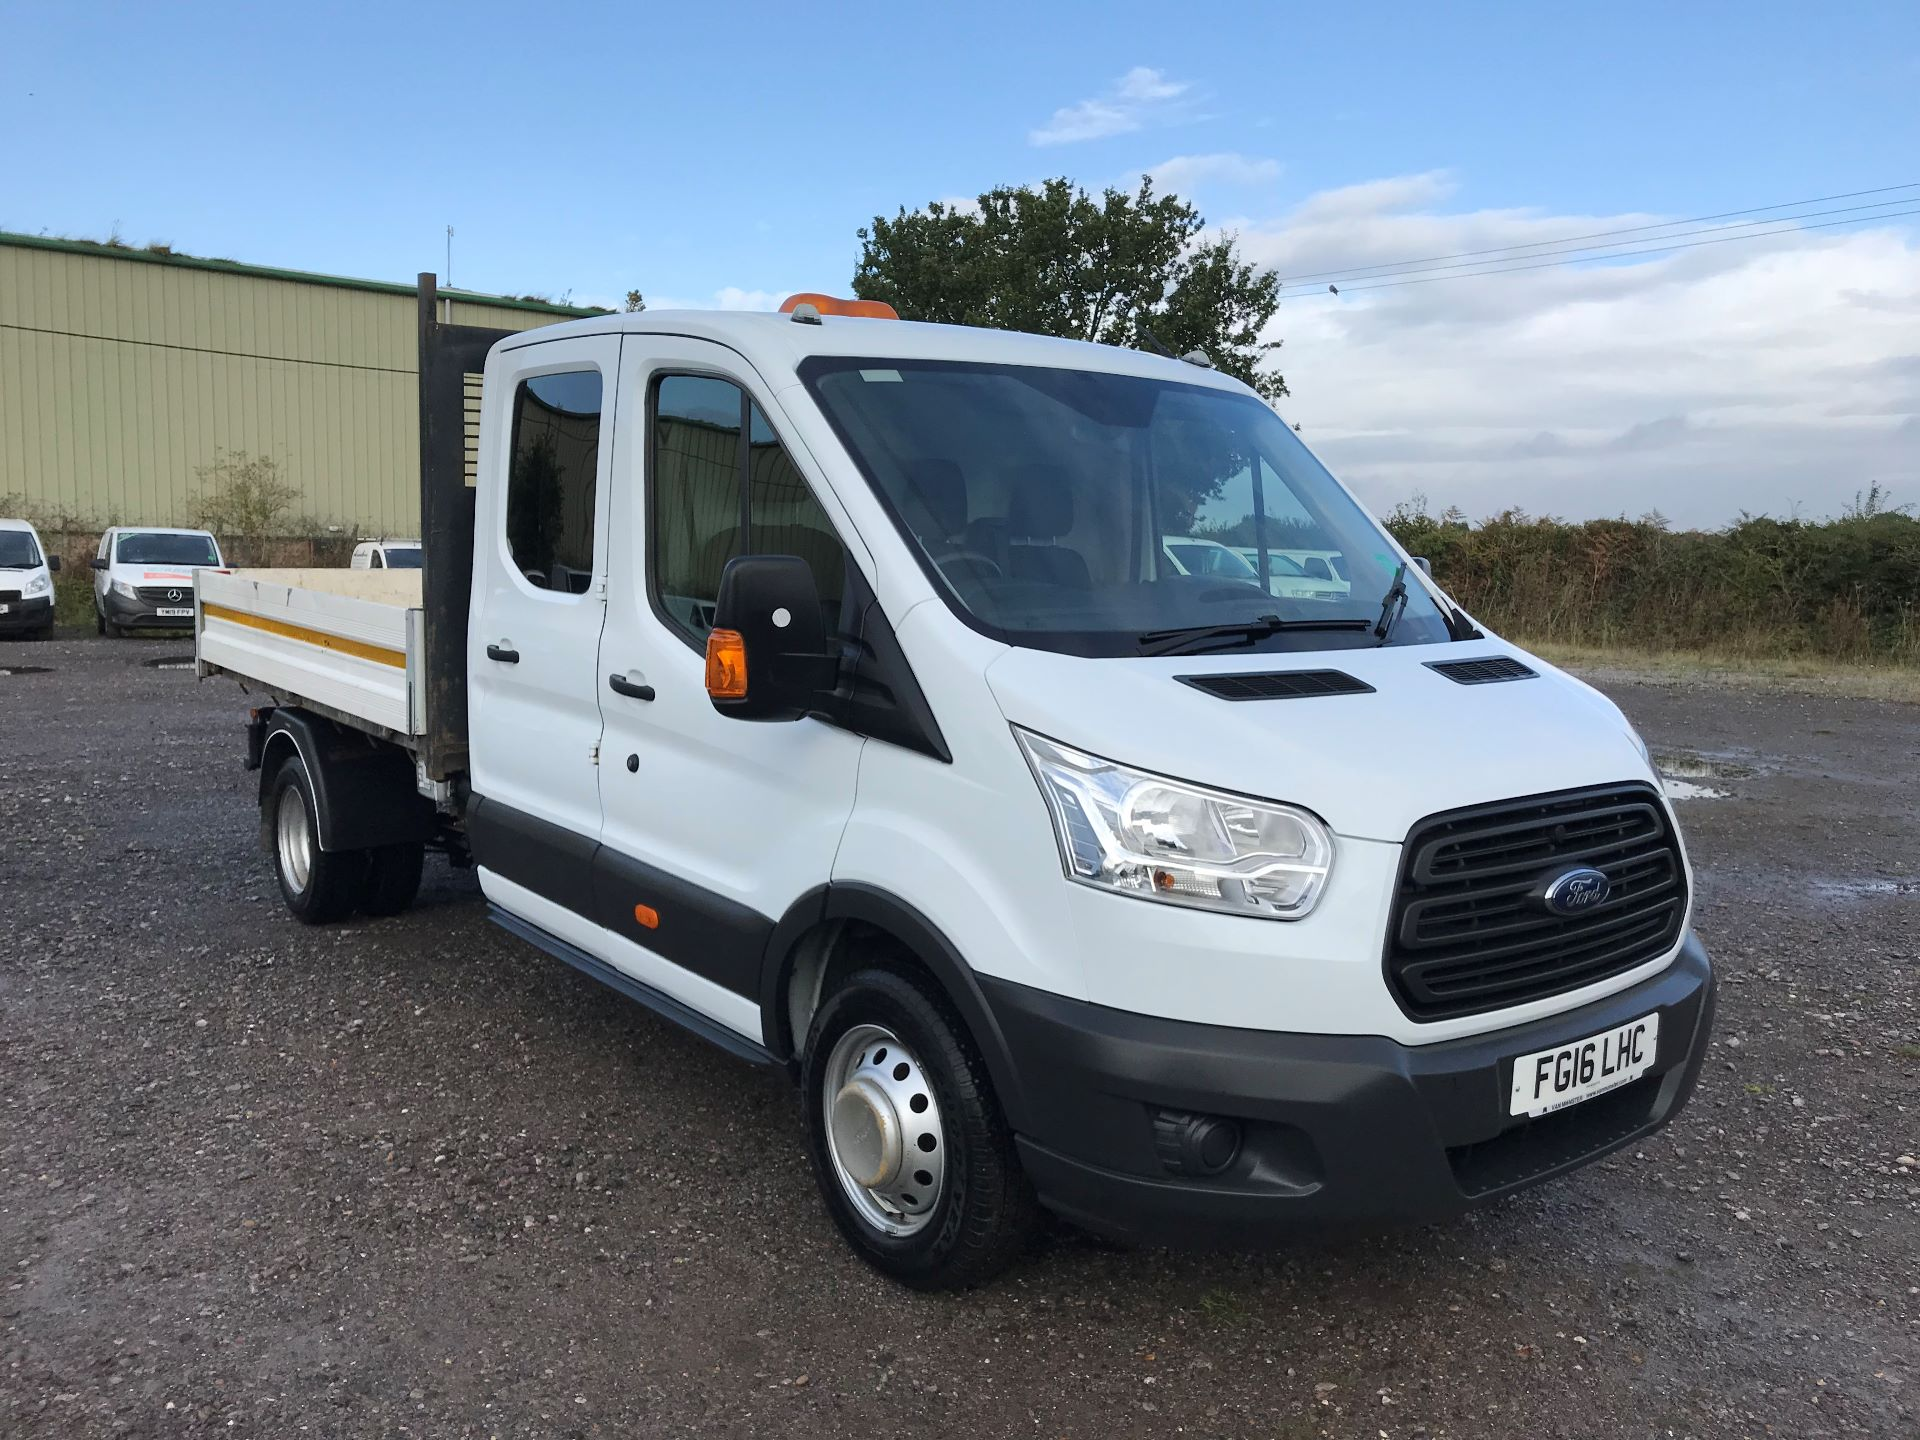 2016 Ford Transit 350 L3 DOUBLE CAB TIPPER 125PS EURO 5 (FG16LHC)